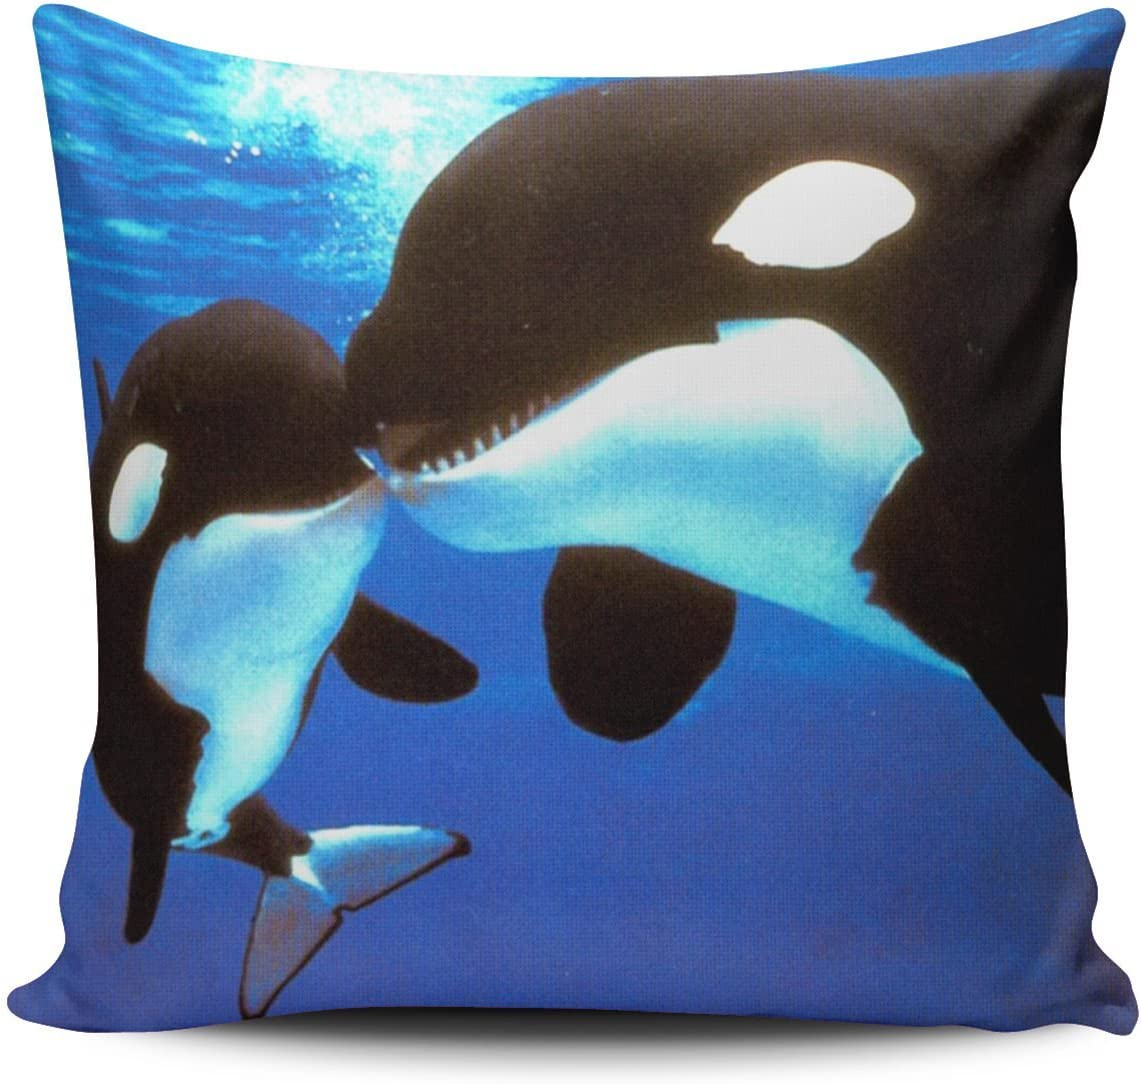 Hoooottle Custom Luxury Funny Lover Couples Black Killer Whale Orca Kiss Jaws Square Pillowcase Zippered One Side Printed 20x20 Inches Throw Pillow Case Cushion Cover Home Kitchen